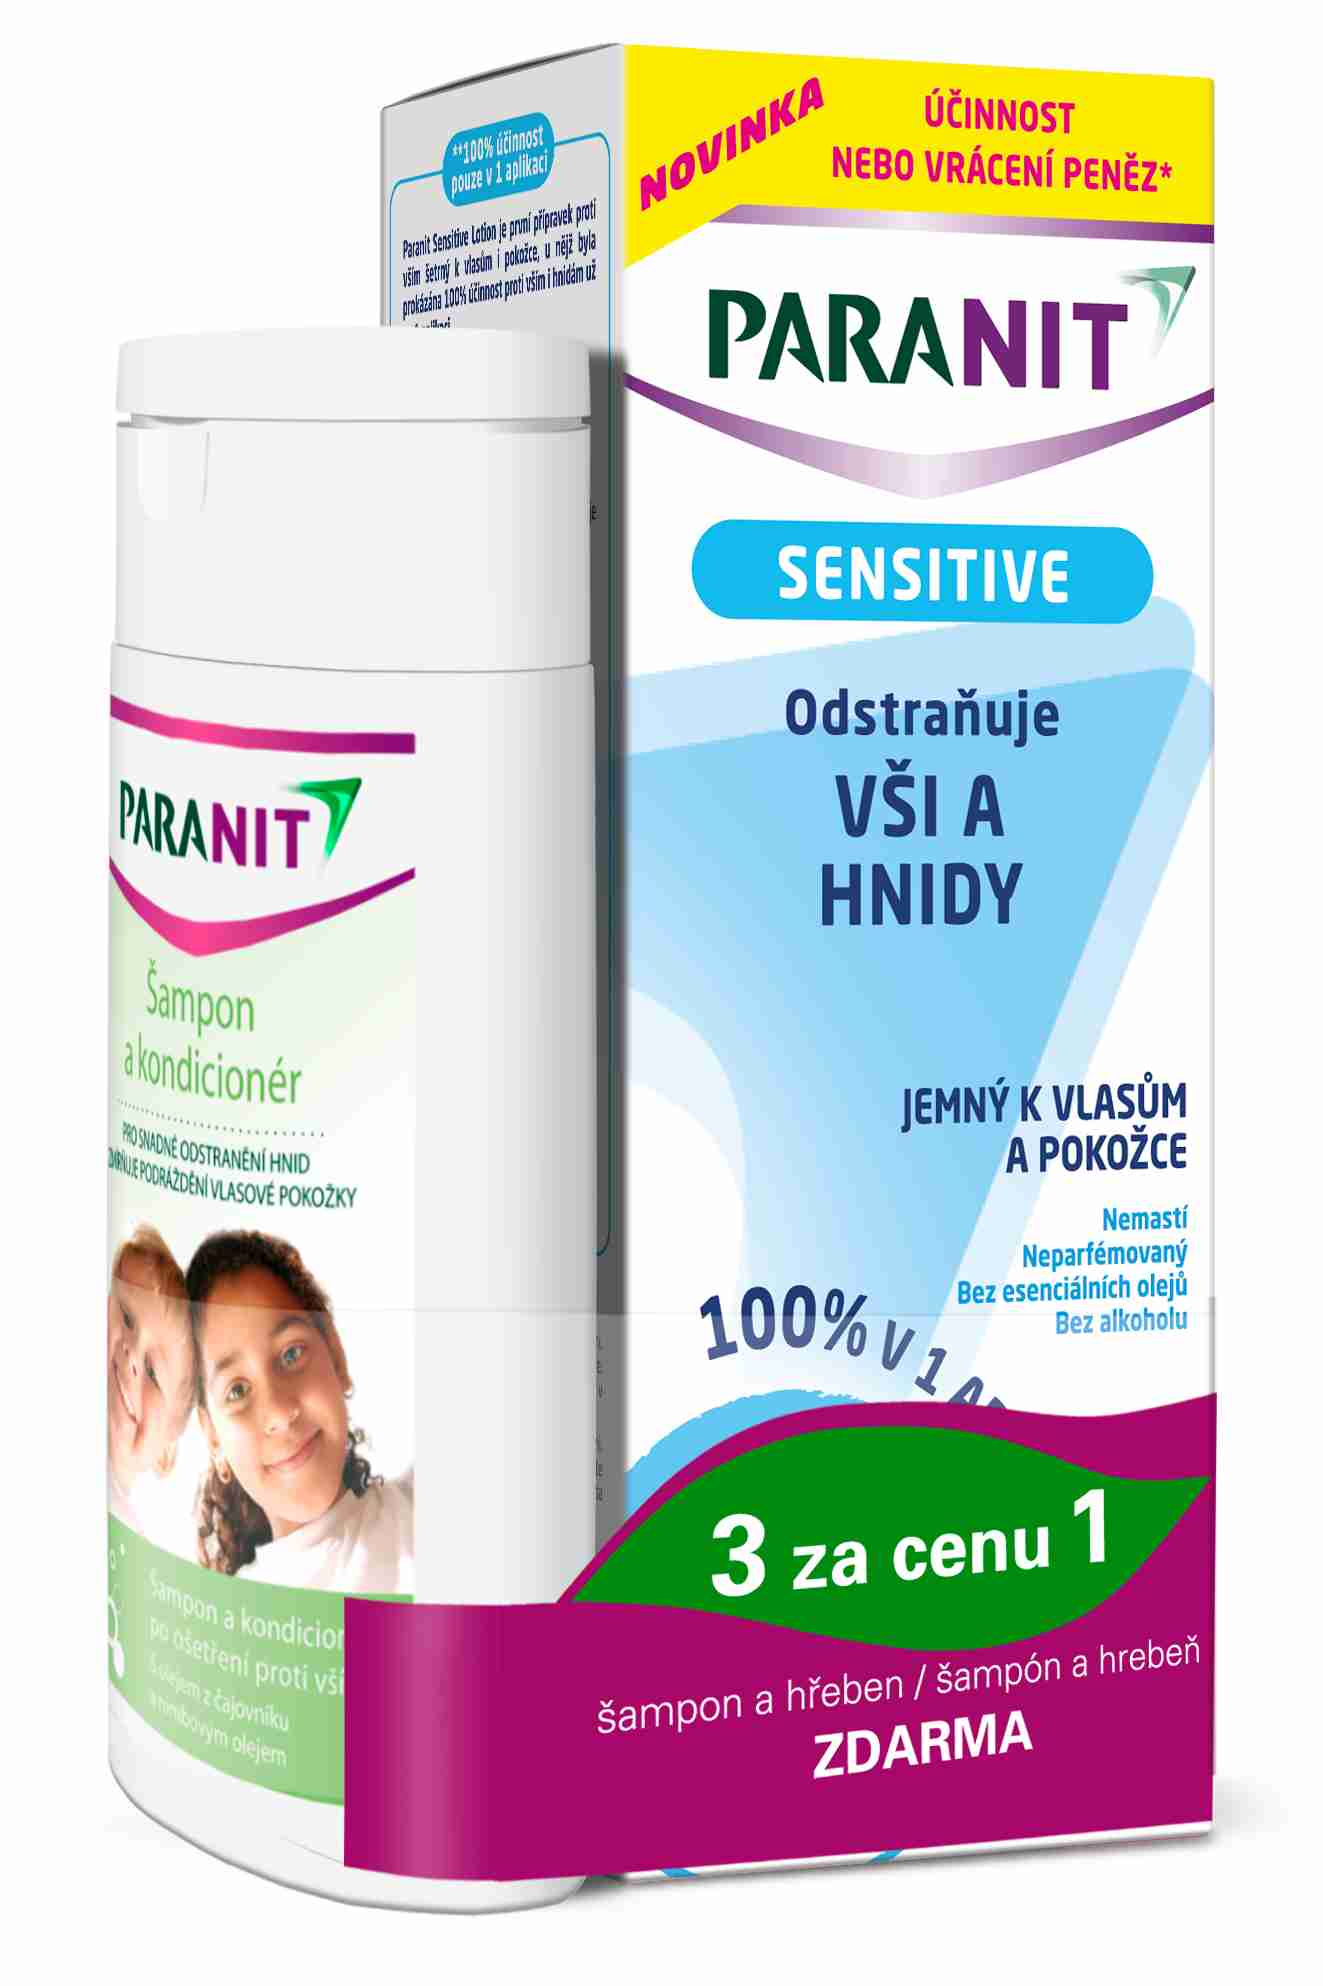 Omega Pharma Paranit Sensitive Lotion 150 ml + šampon 100 ml ZDARMA + hřeben